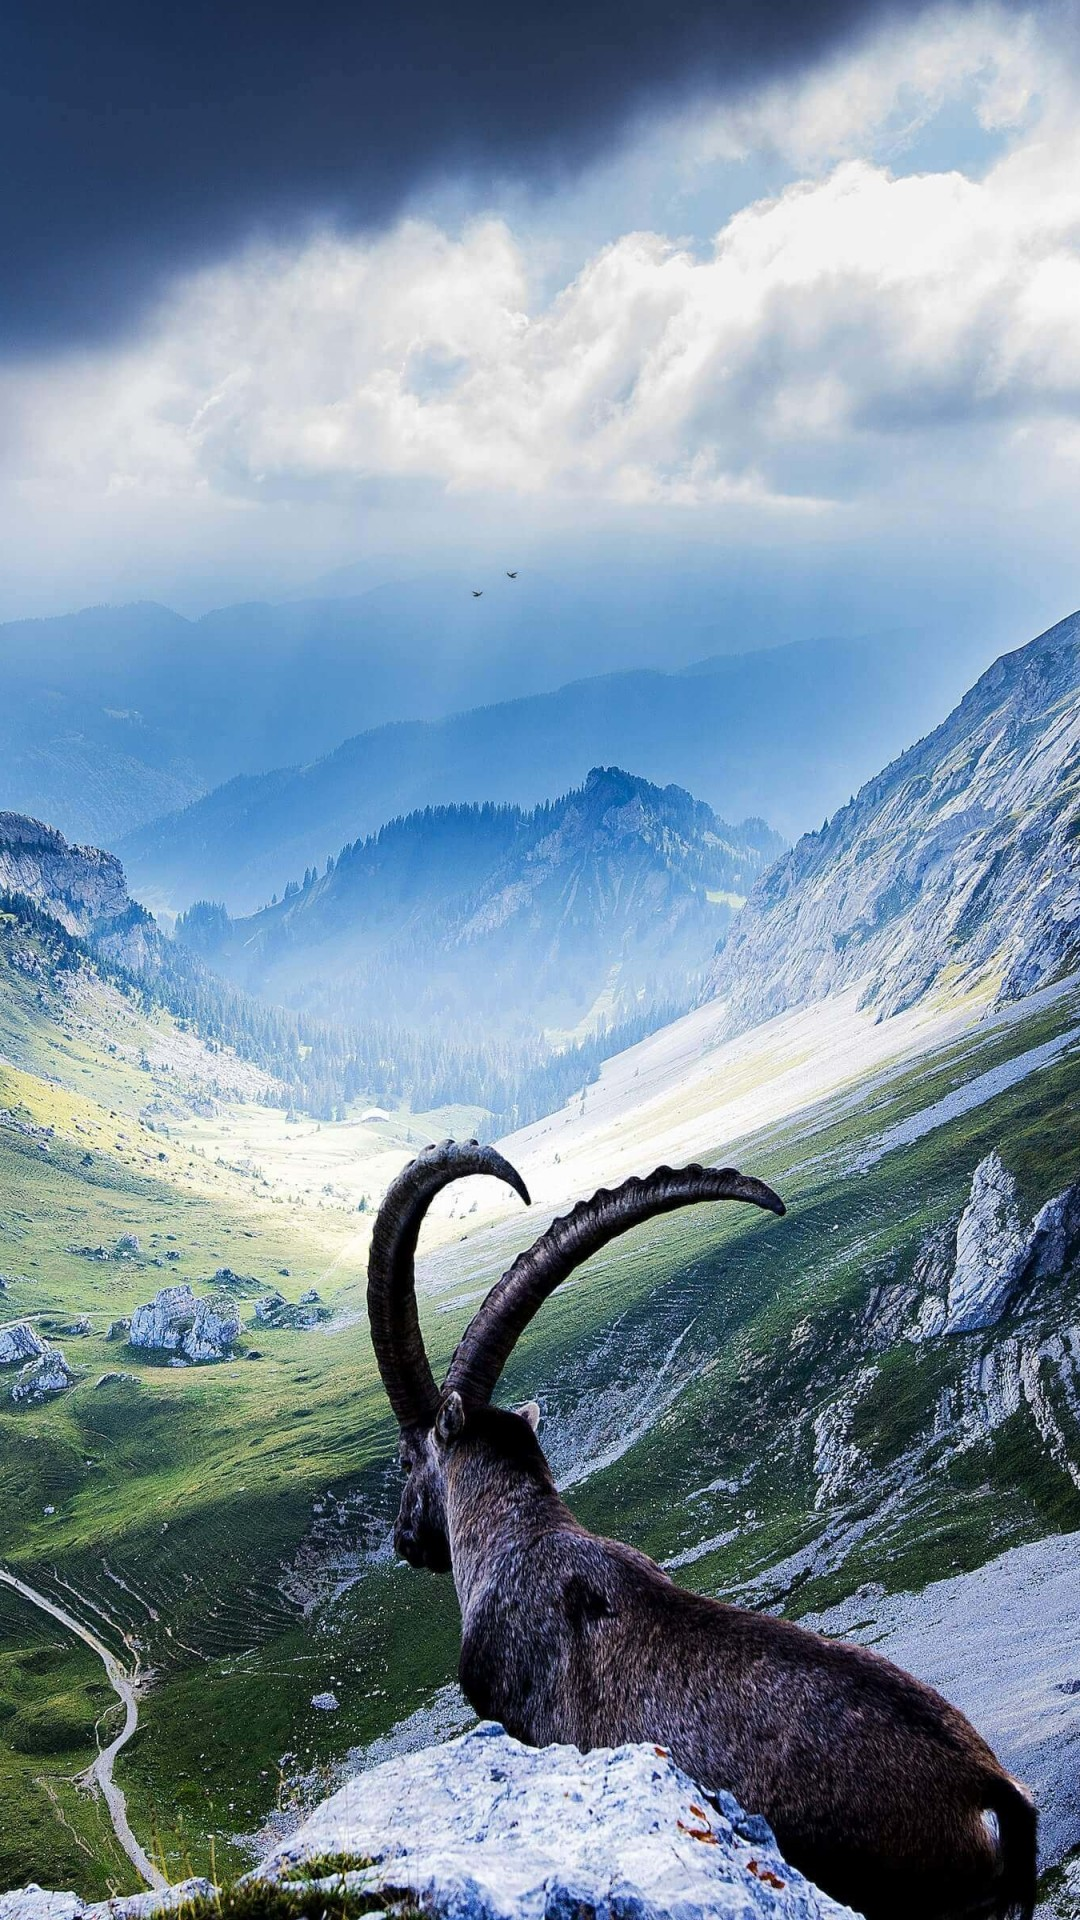 Goat at Pilatus, Switzerland Wallpaper for SAMSUNG Galaxy S4